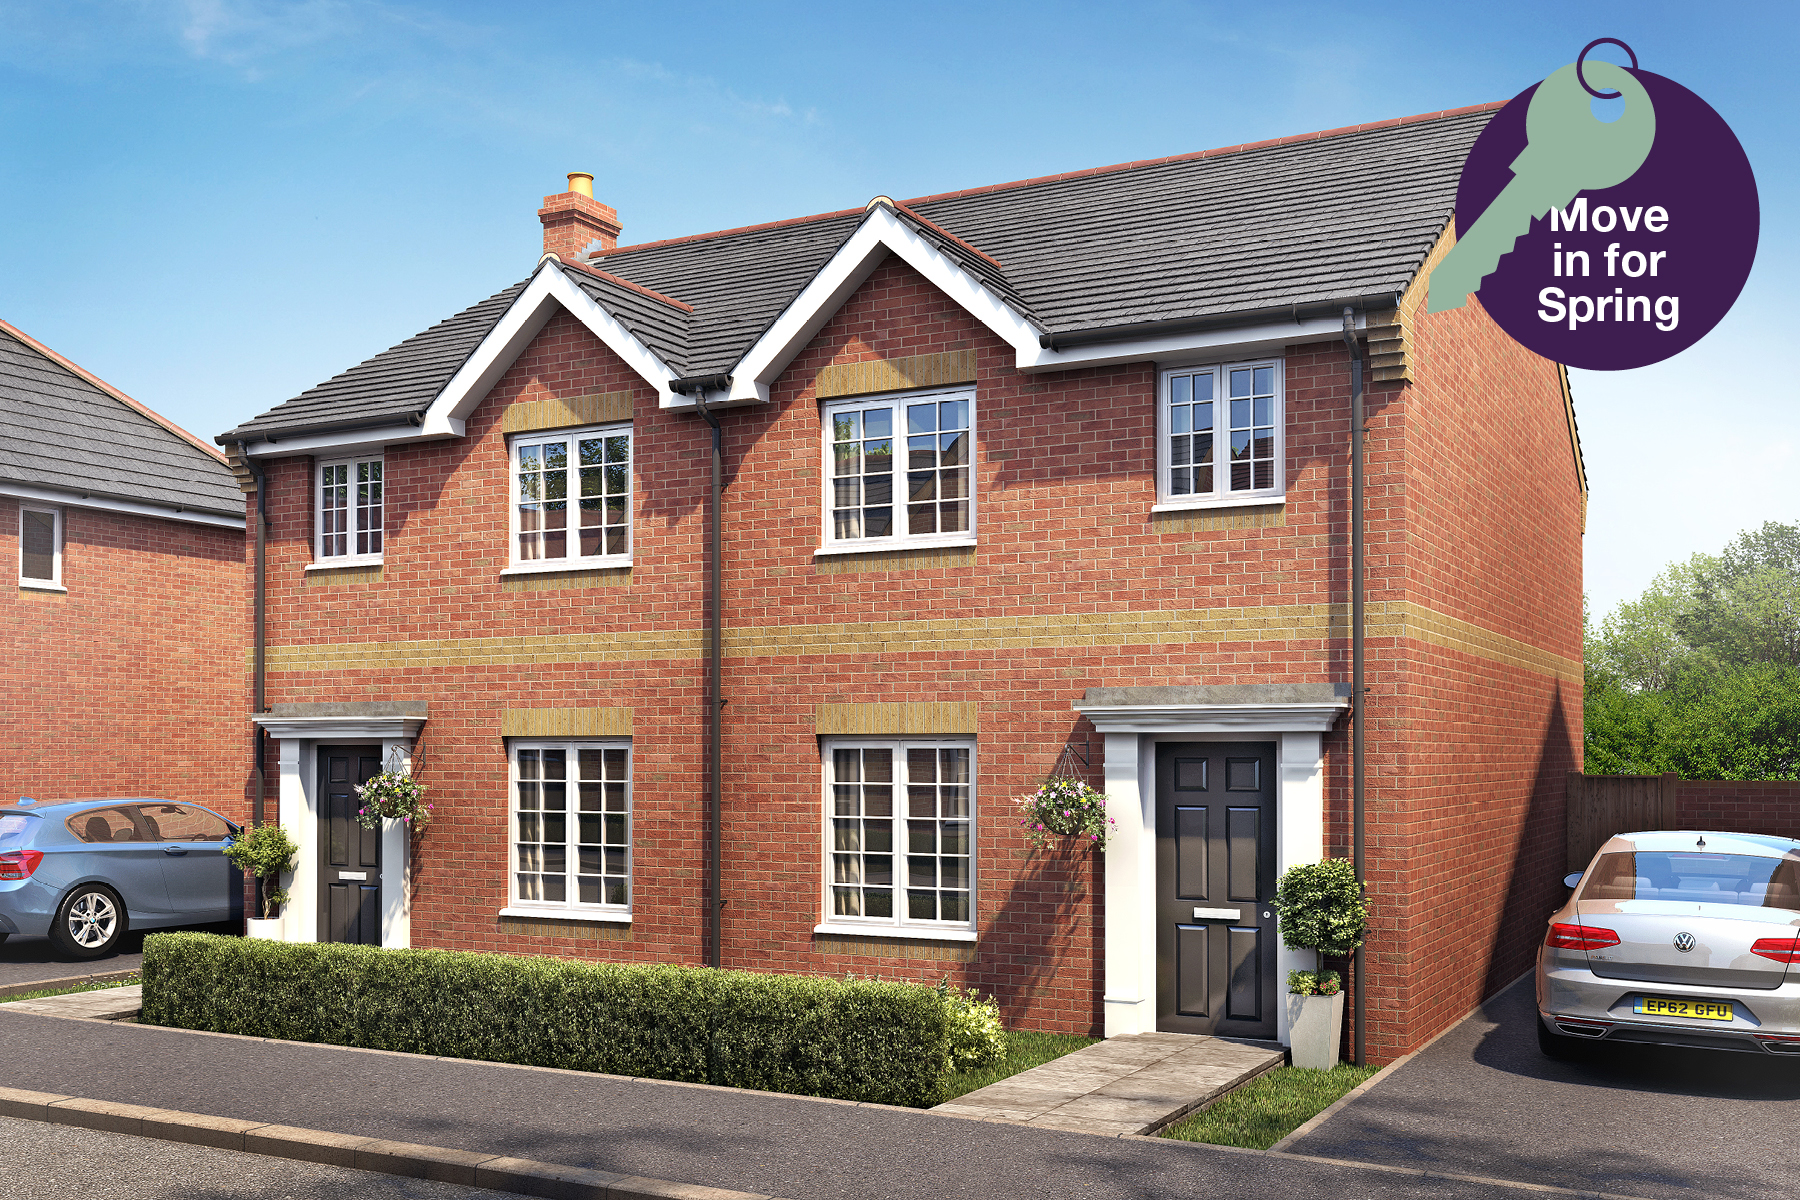 Midsummer Park - Plot 3 Flatford Move In for Spring Graphic